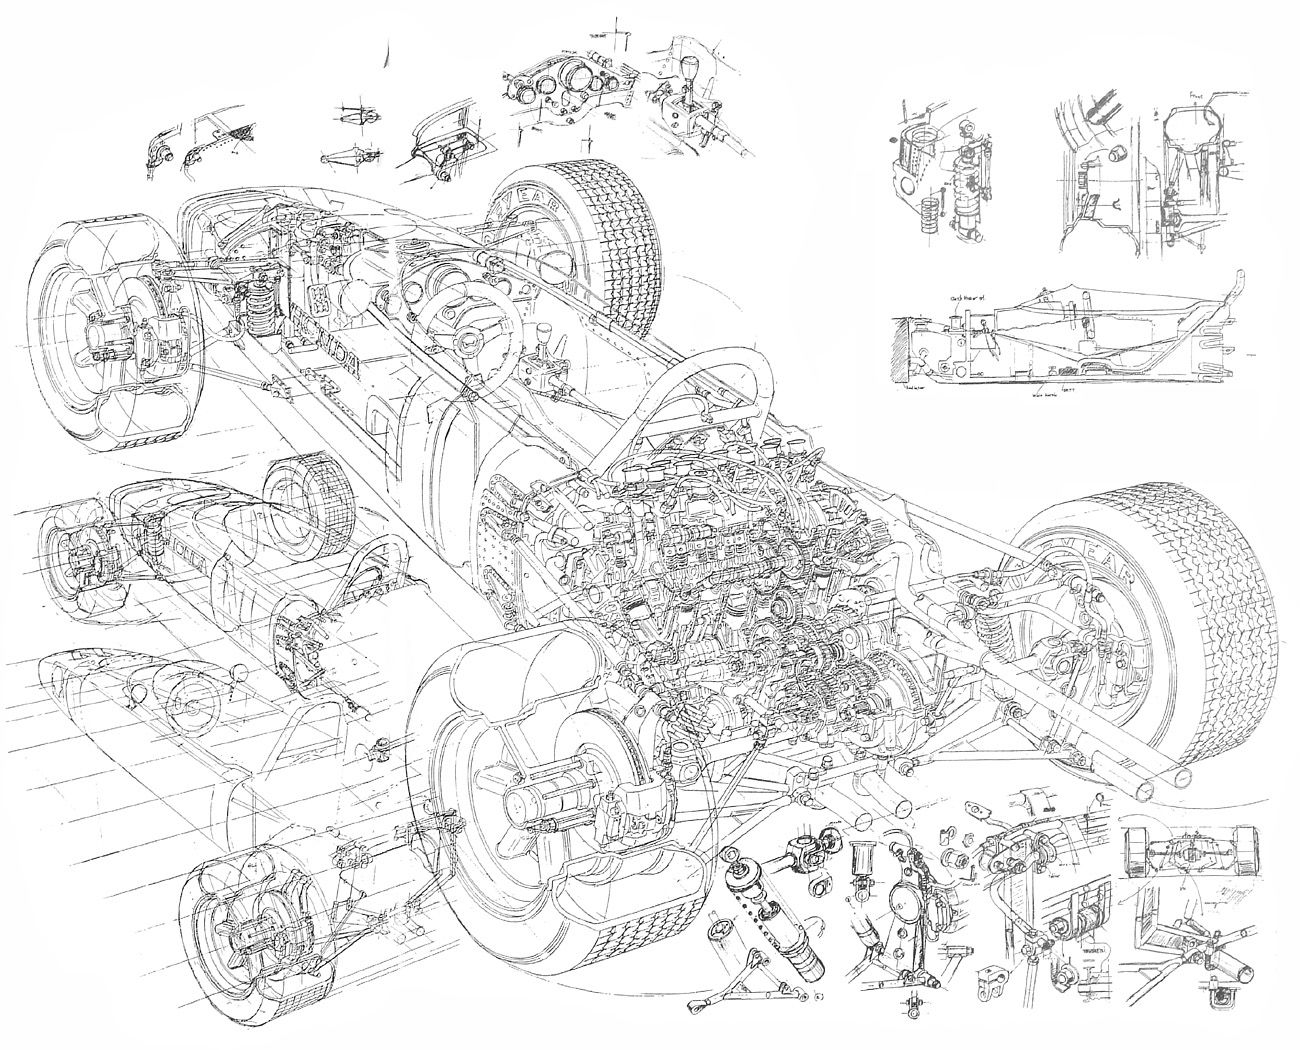 Honda Ra272 Formula 1 Line Construction Artwork For Cutaway By Yoshiro Inomoto